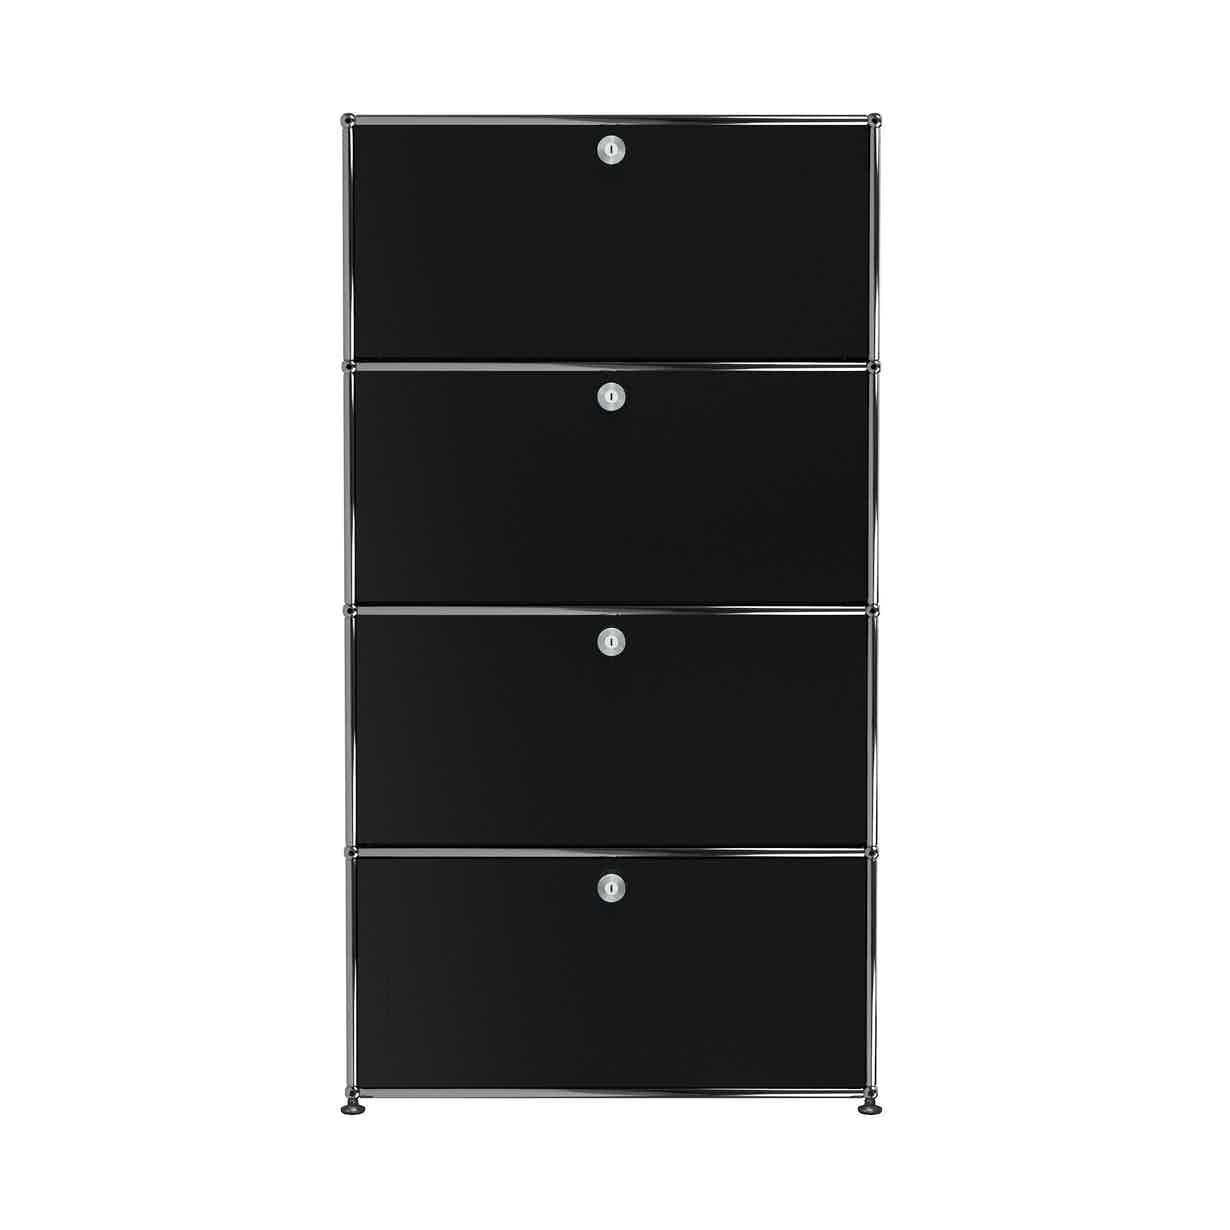 Usm-quick-ship-Haller-Storage-S118A-black-haute-living